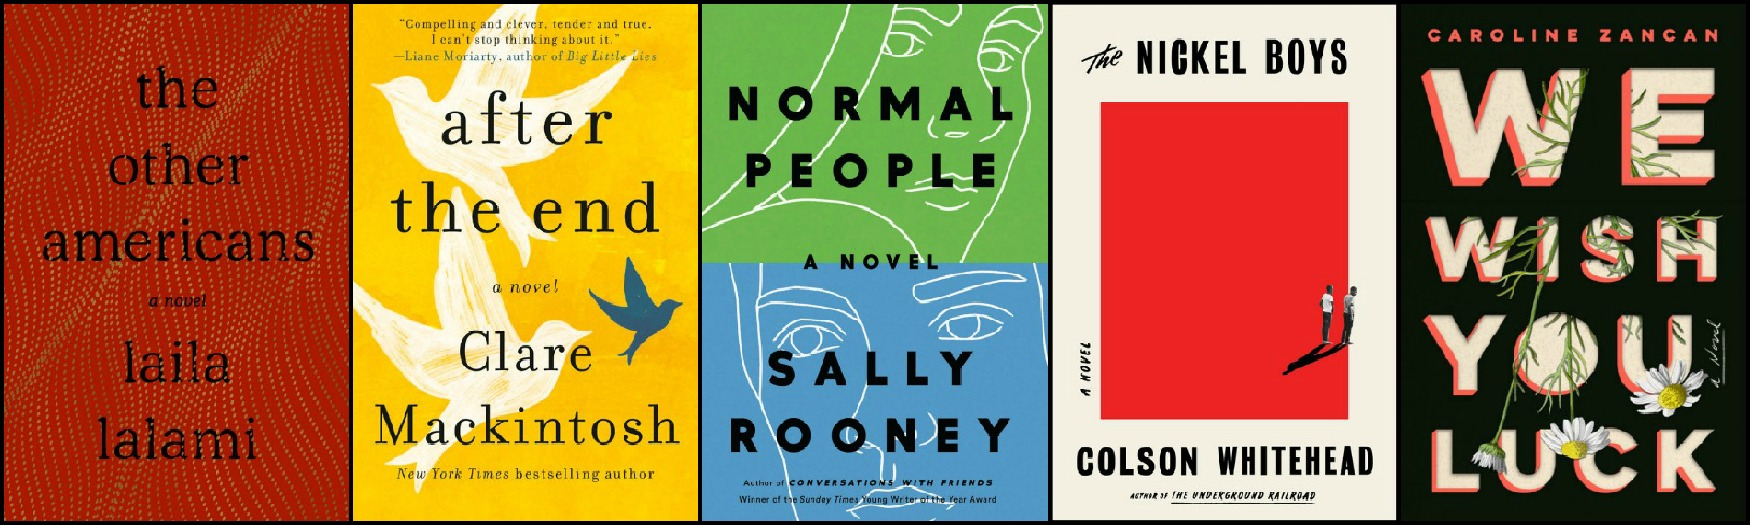 Novel Visits' Favorite New-to-Me Authors from 2019 - Laila Lalami, Clare Mackintosh, Sally Rooney, Colson Whitehead and Caroline Zancan